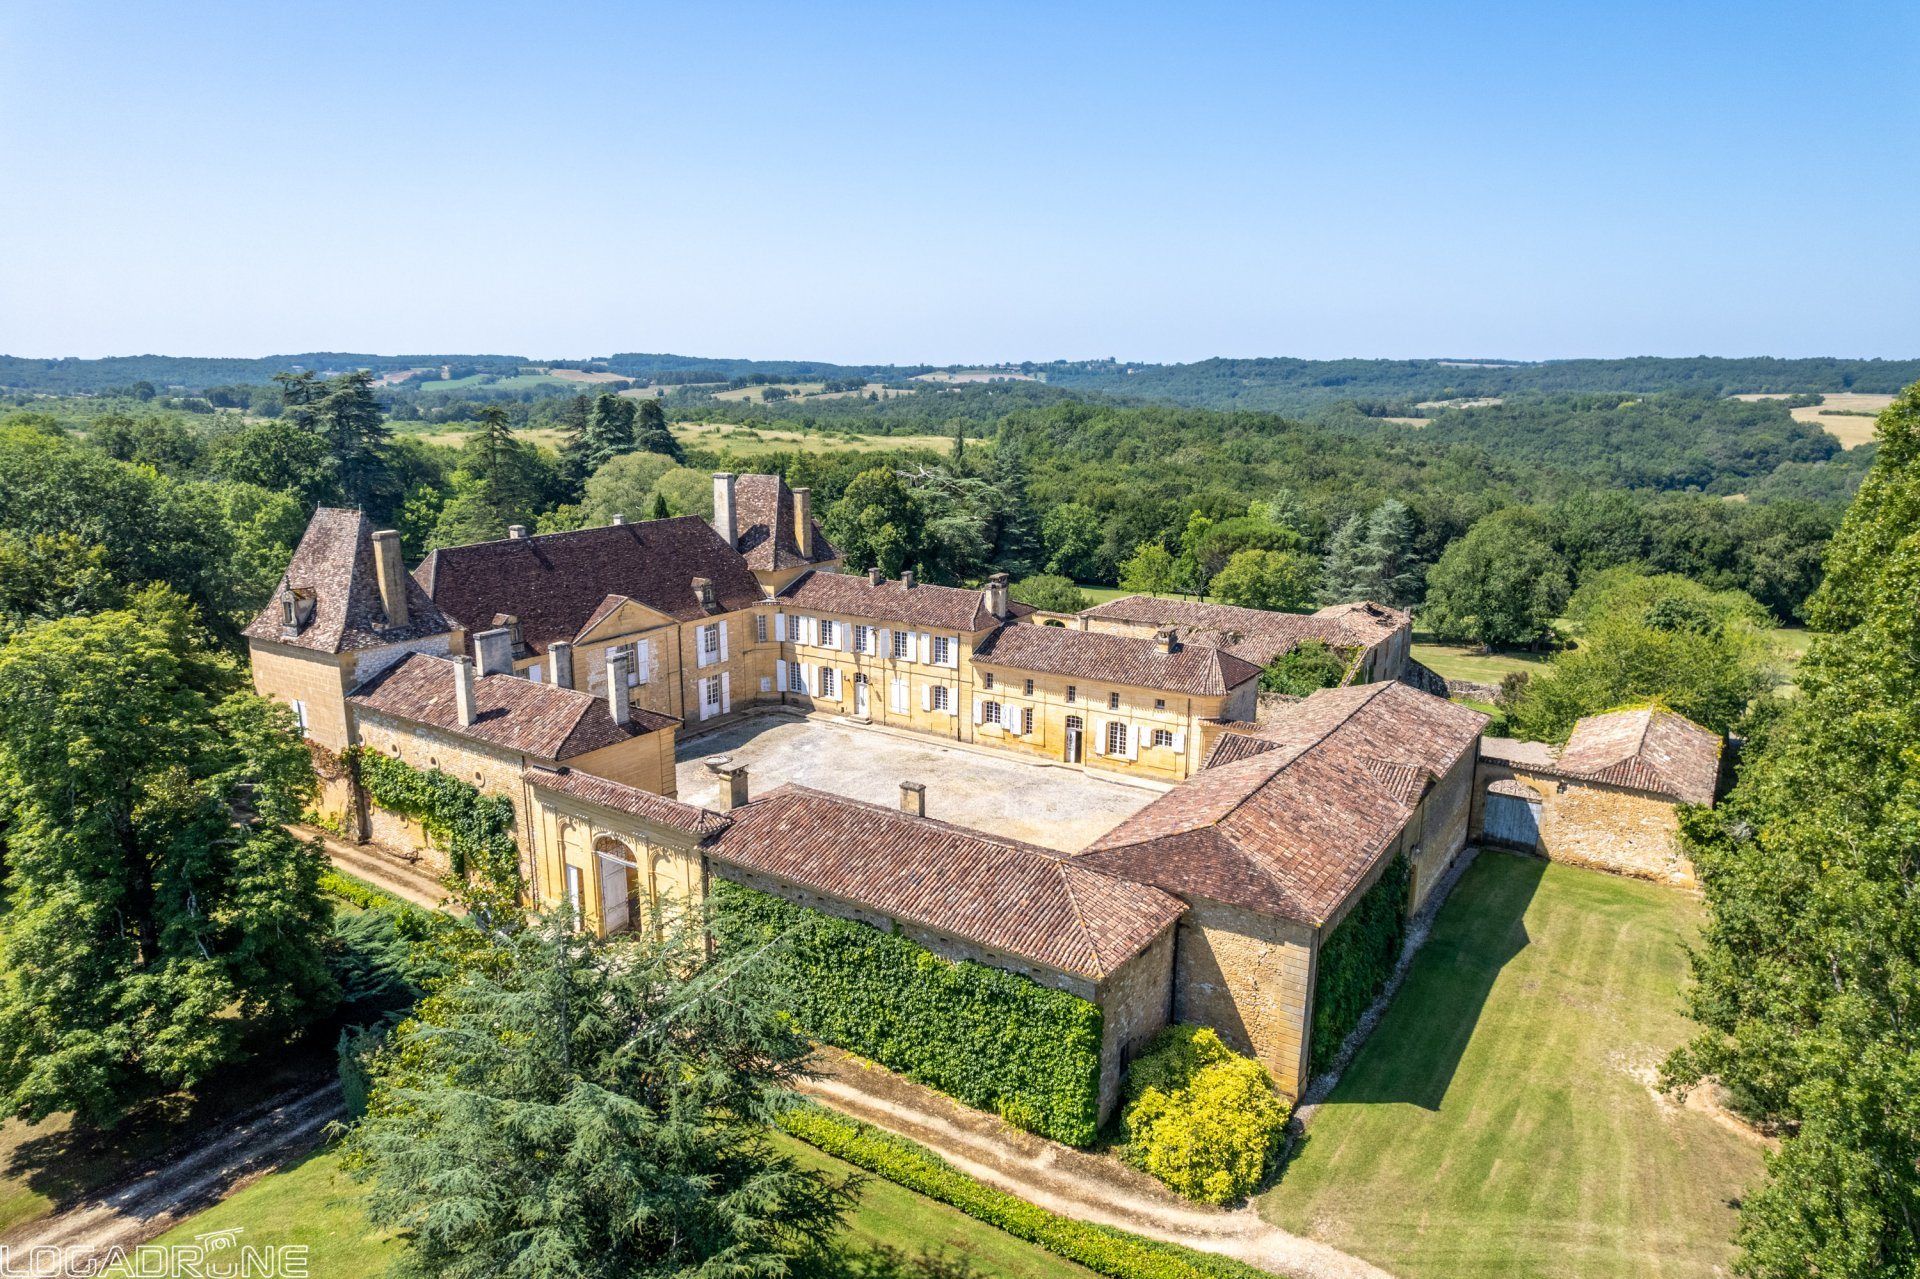 Beautiful period chateau set in 188 hectares of Dordogne countryside